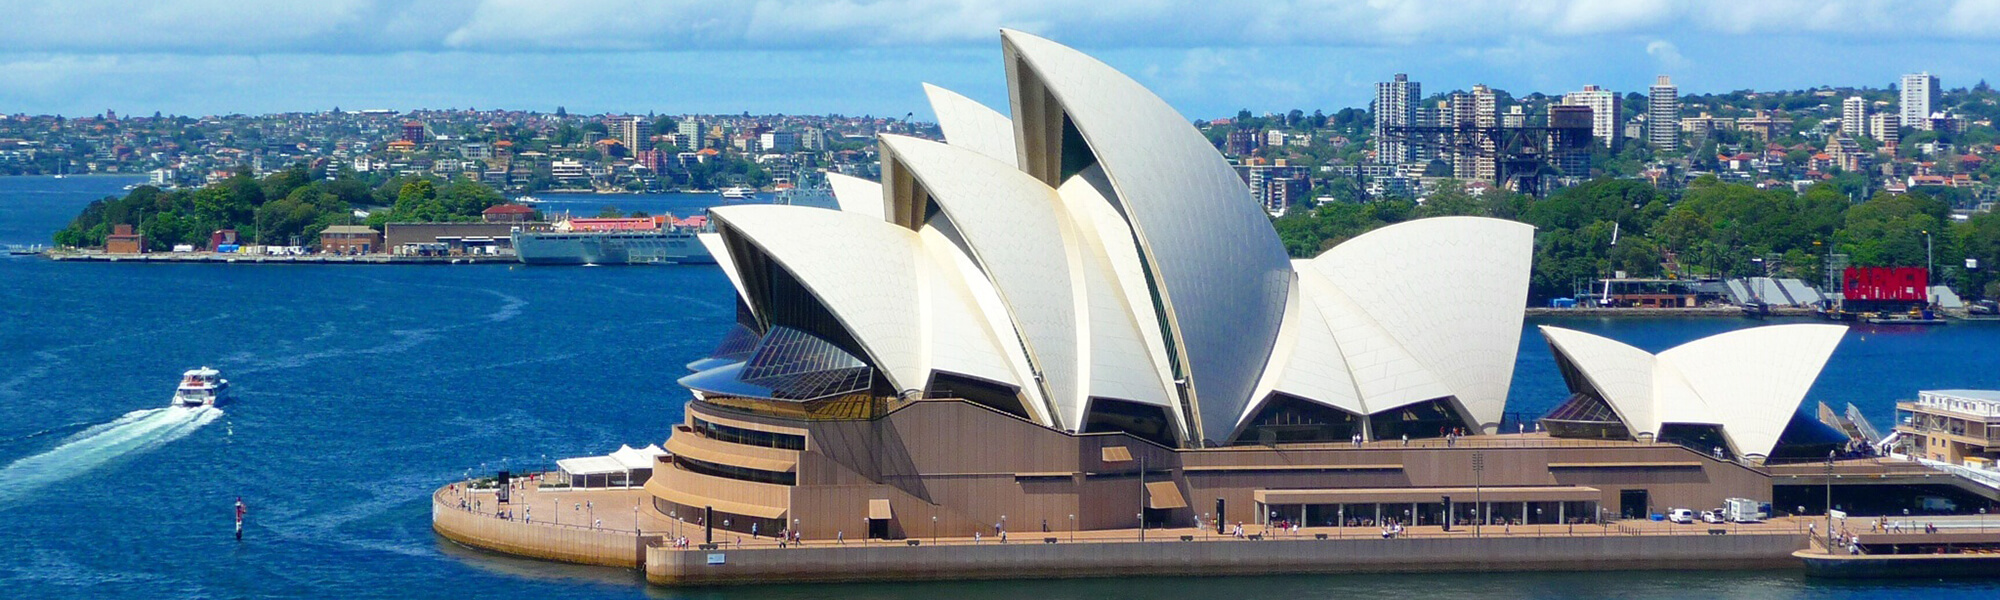 With Erika Schmid you'll bring your business safely to Australia